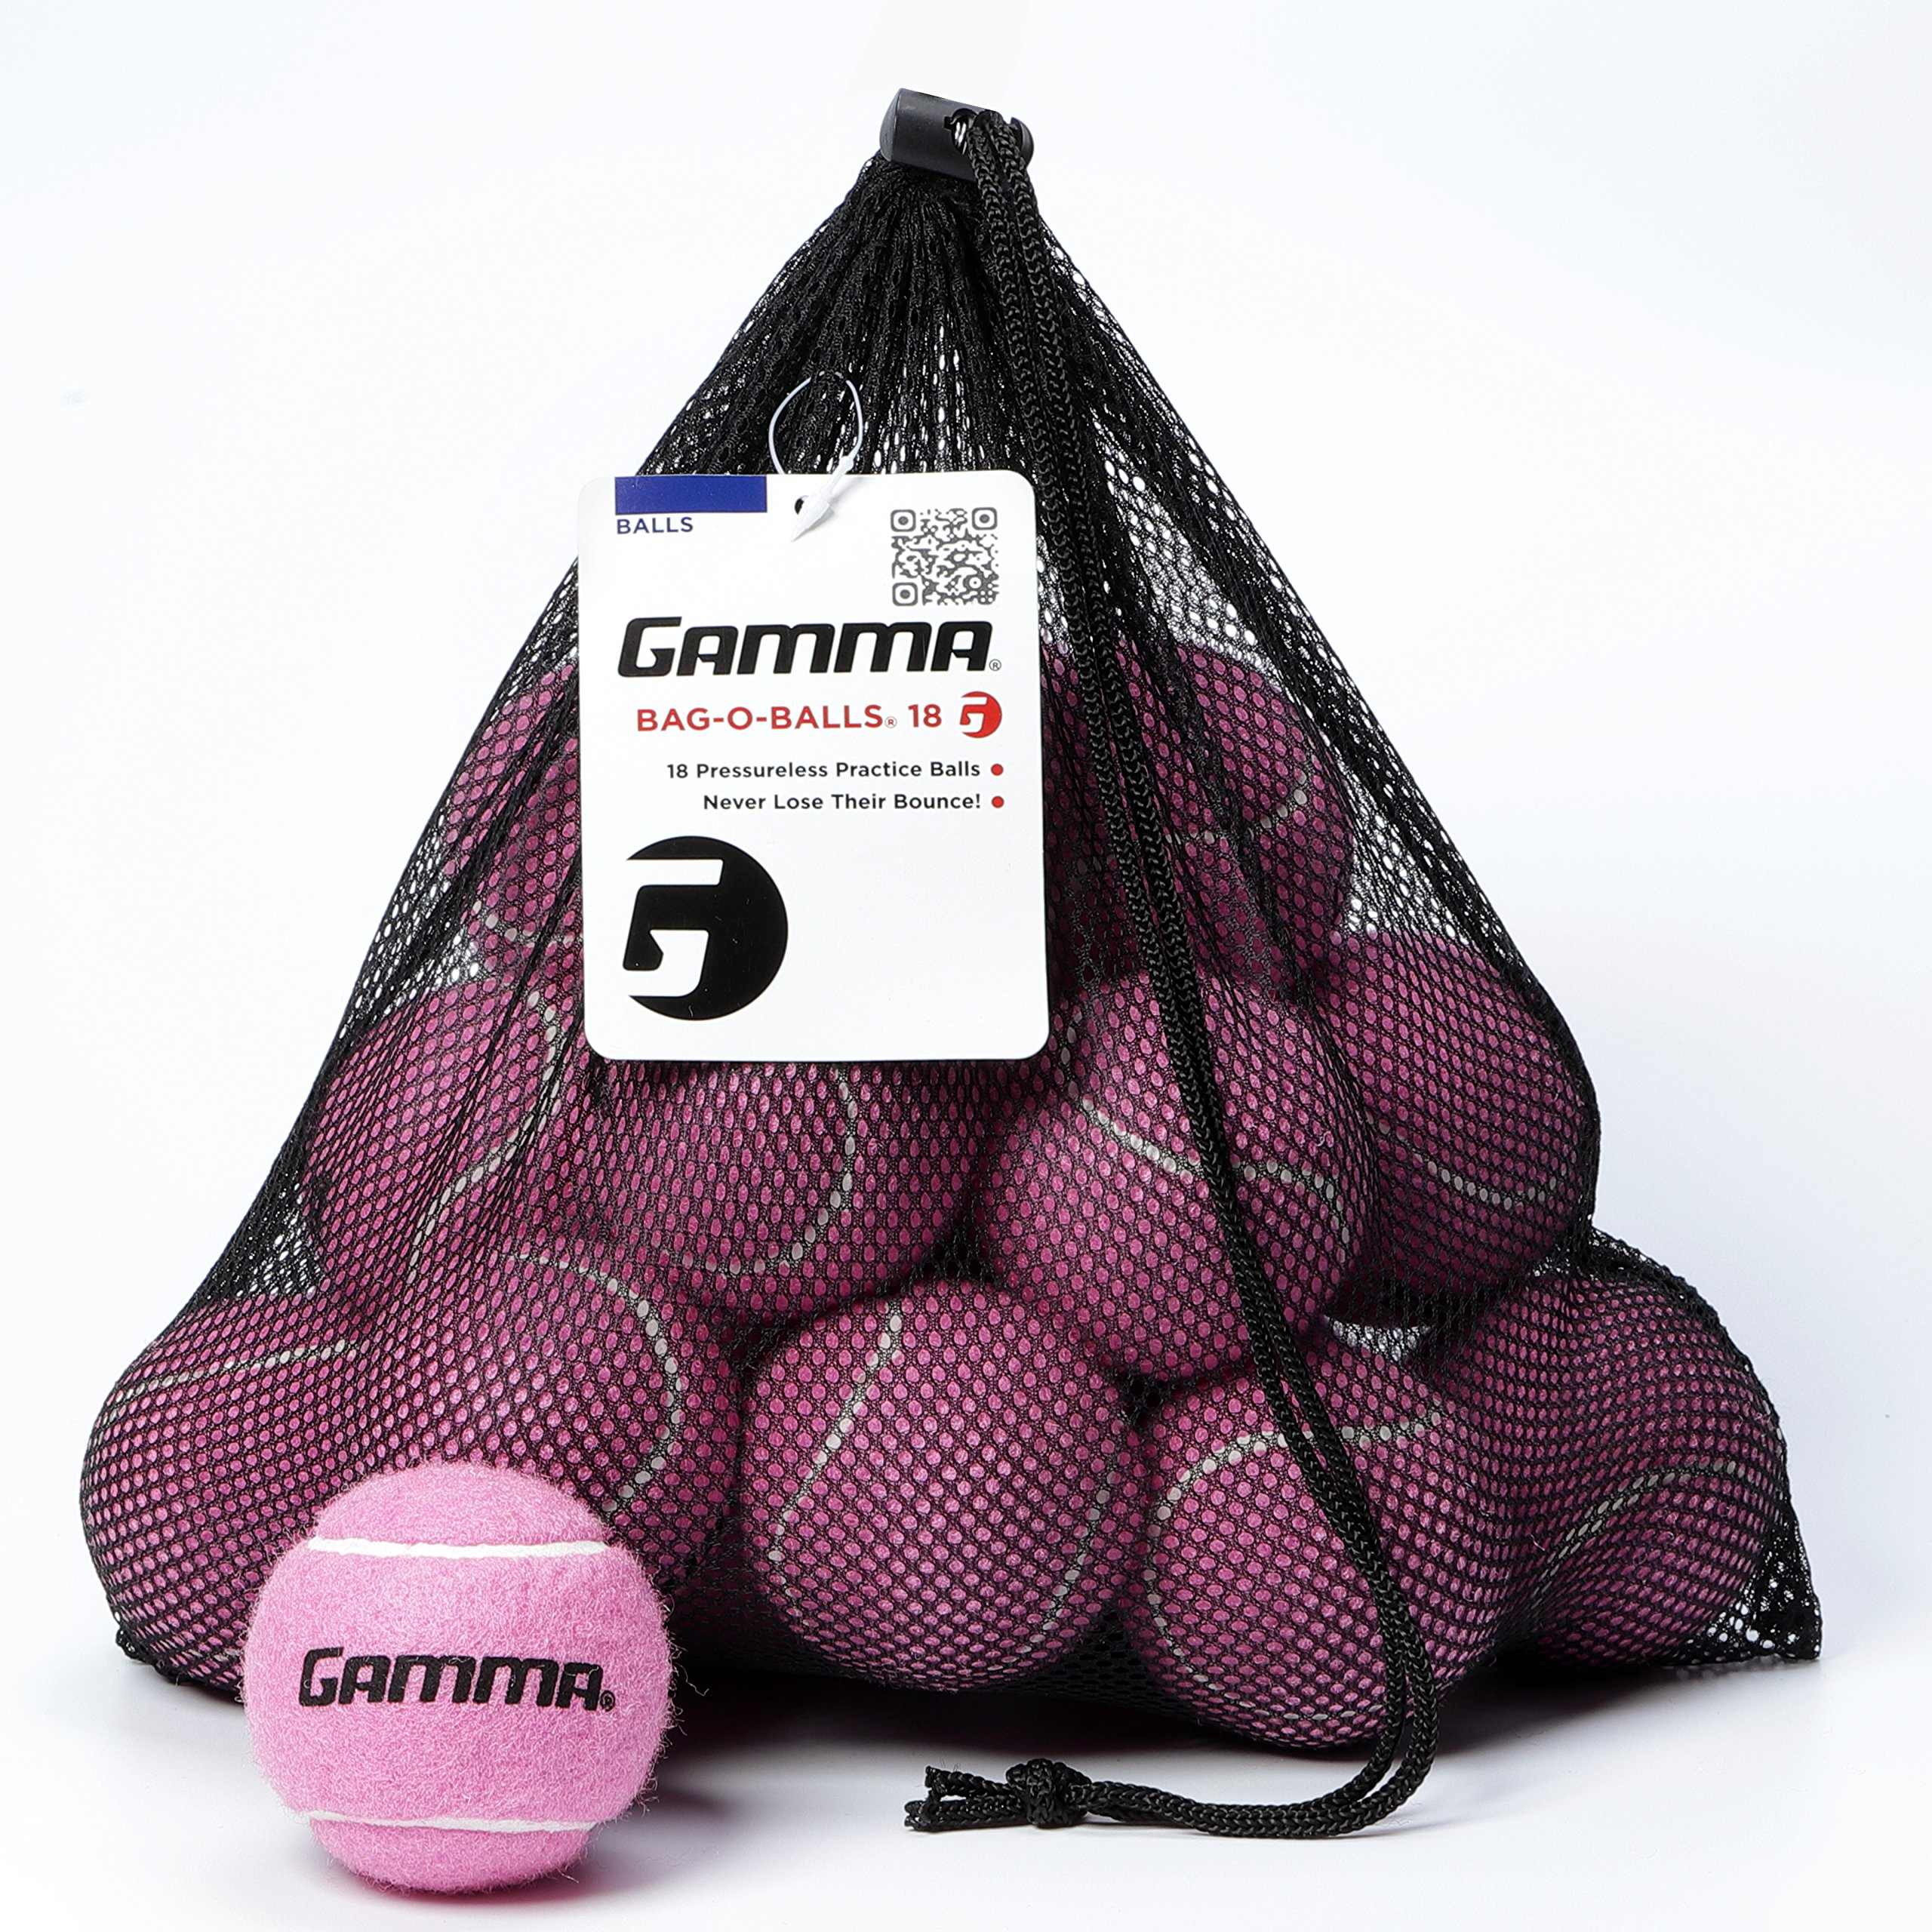 Gamma Bag of Pressureless Tennis Balls - Sturdy & Reuseable Mesh Bag with Drawstring for Easy Transport - Bag-O-Balls (18-Pack of Balls, Pink) by Gamma Sports